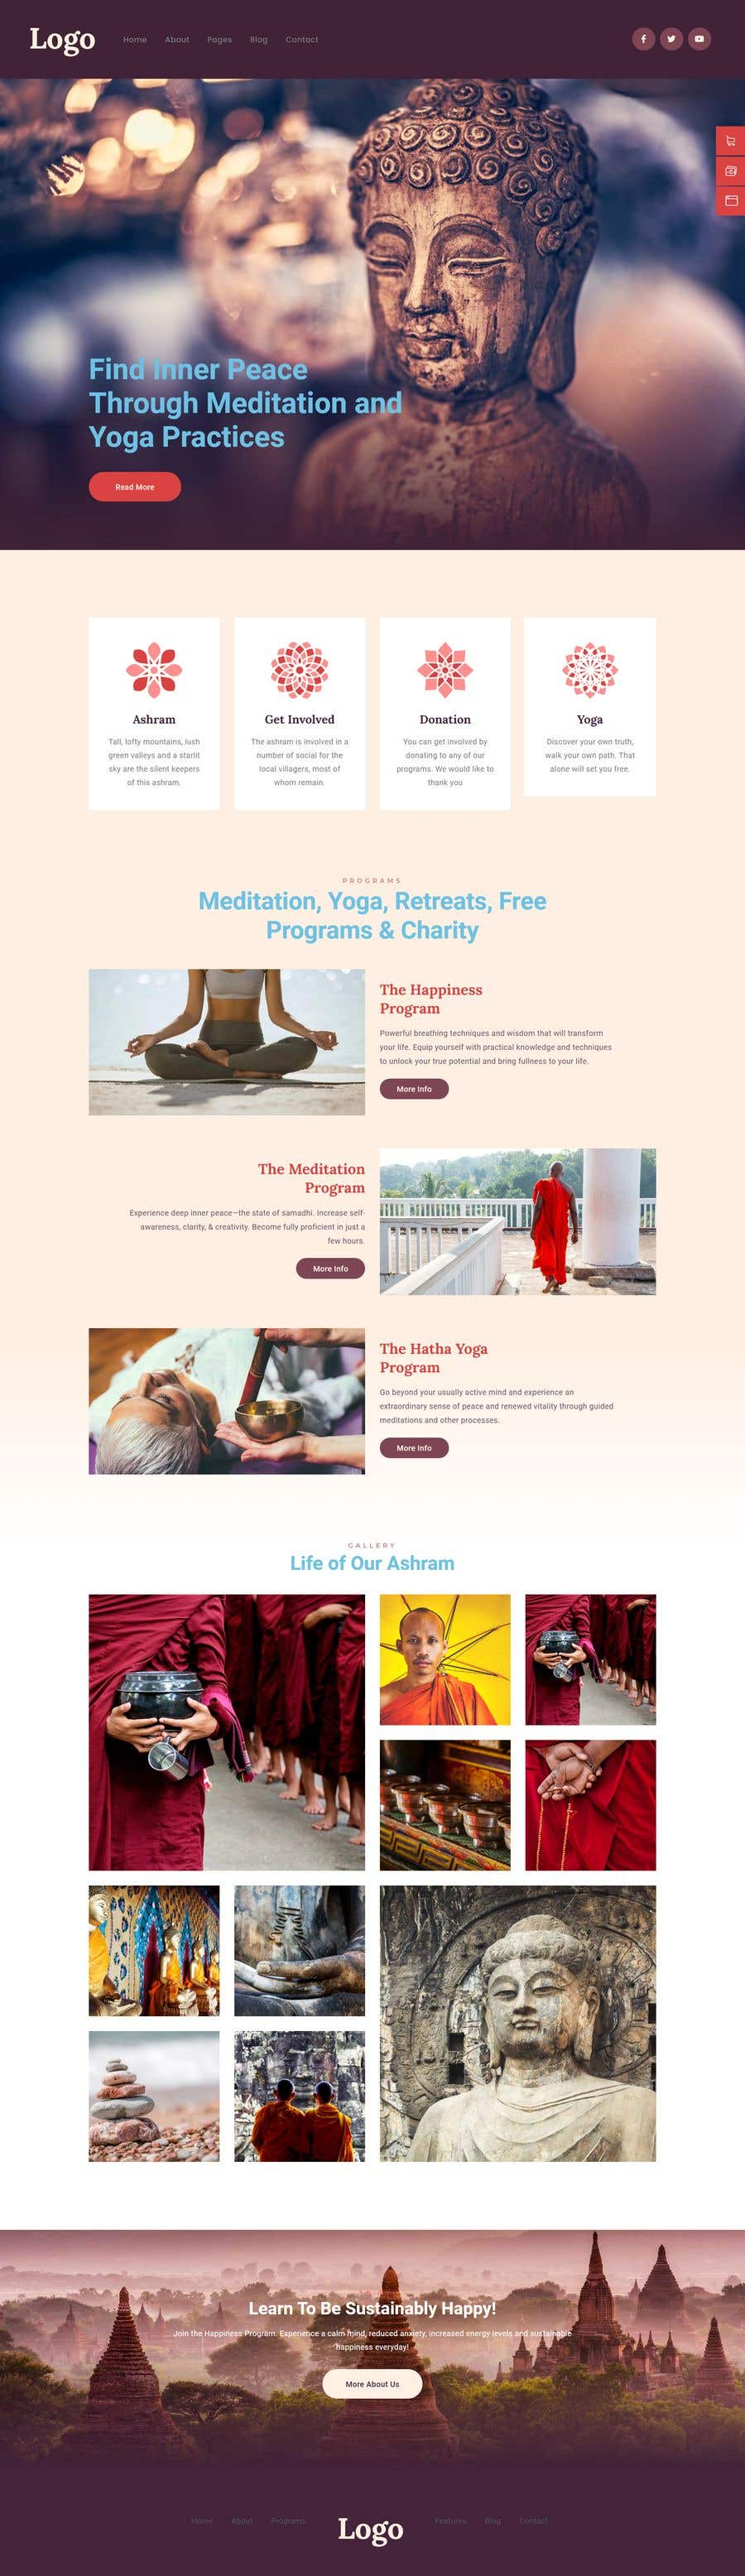 Konkurrenceindlæg #                                        29                                      for                                         A Professional Web Designer is require to design a Buddhist Charity Website